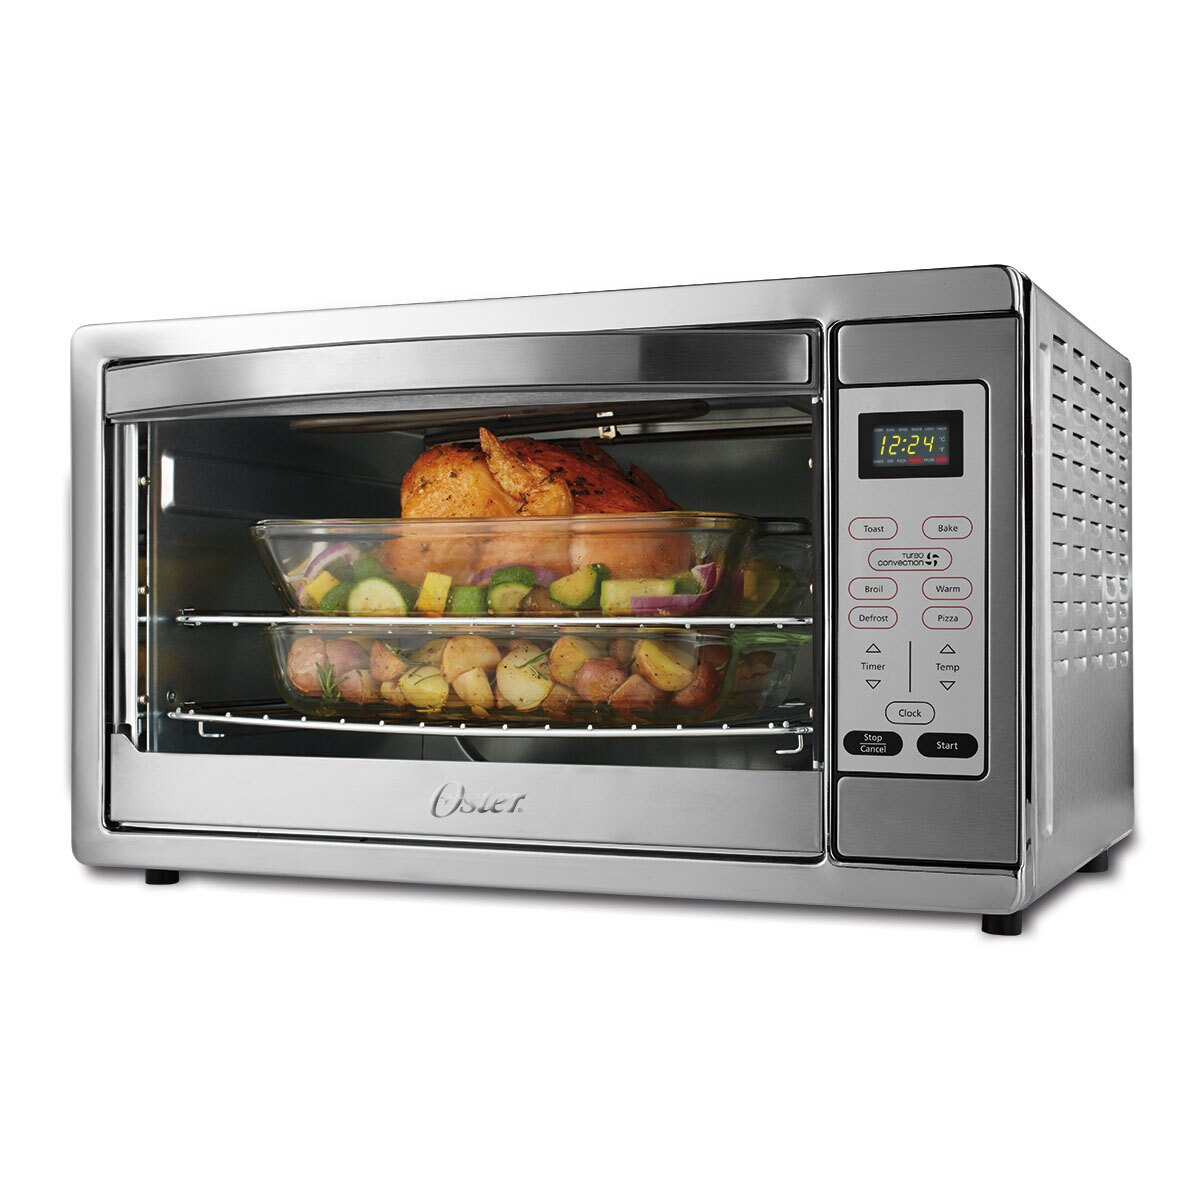 Oster Extra Large Digital Countertop Oven TSSTTVDGXL 0